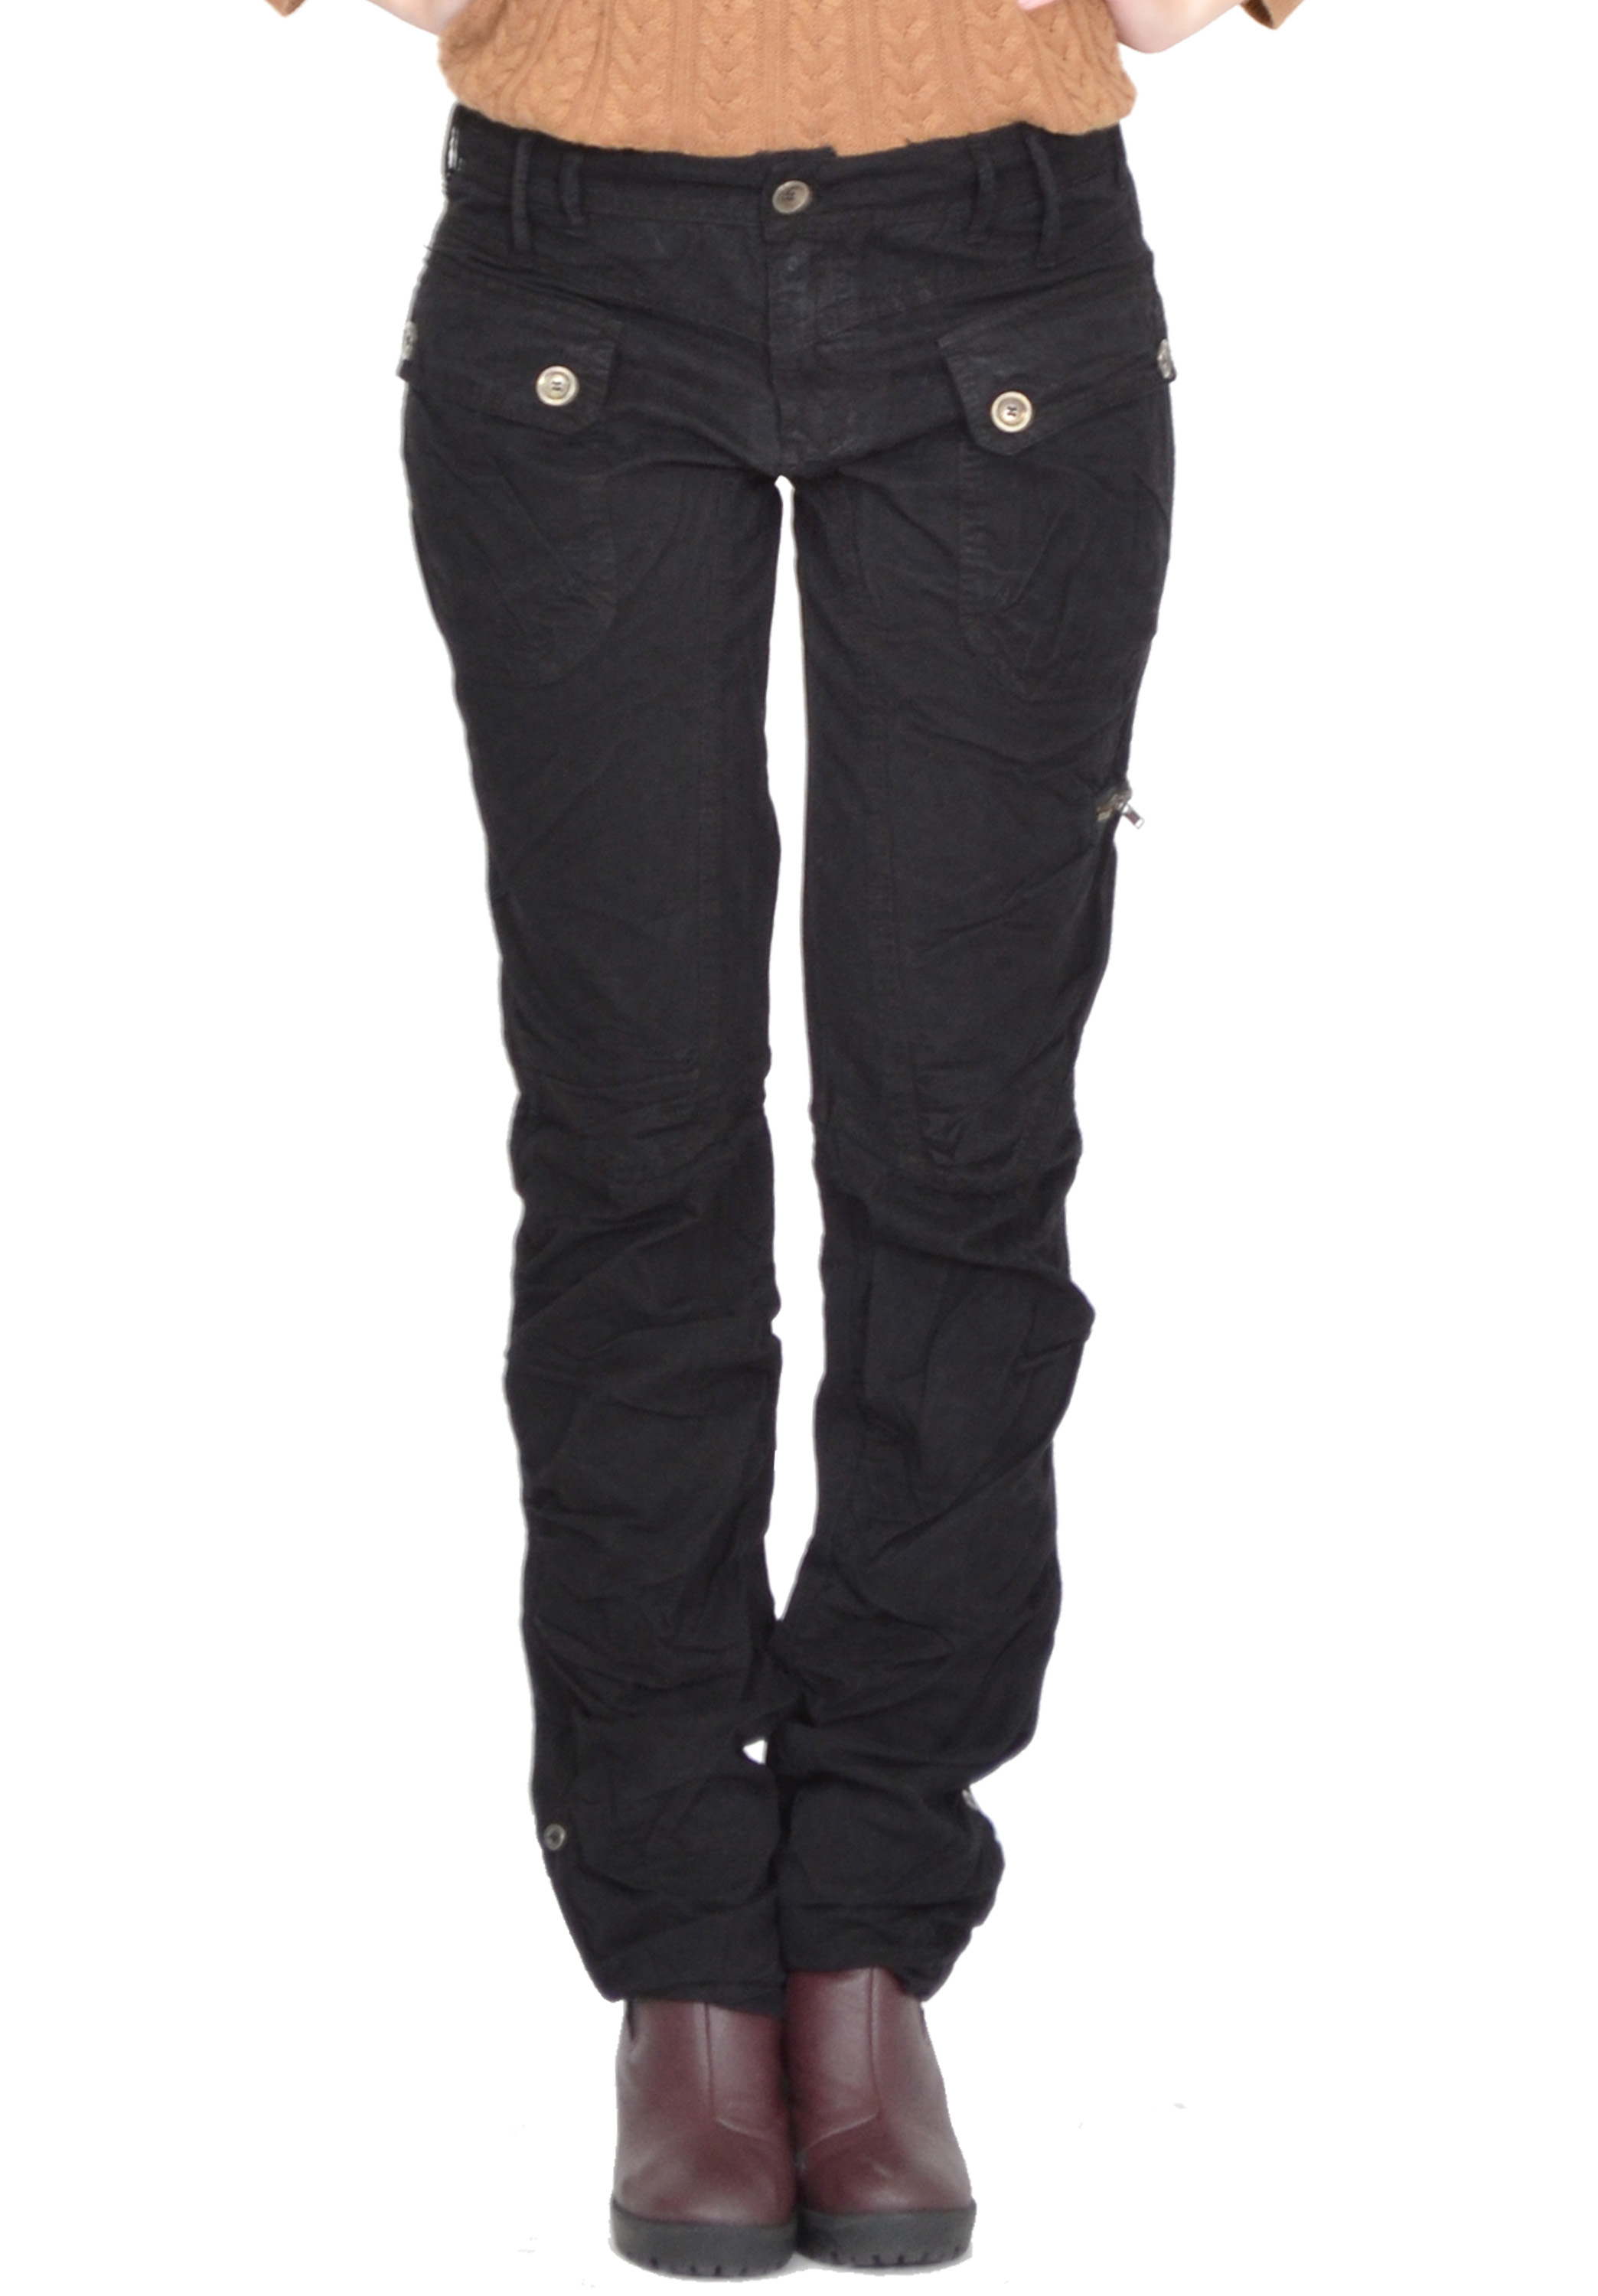 Book Of Black Straight Leg Pants Womens In Germany By